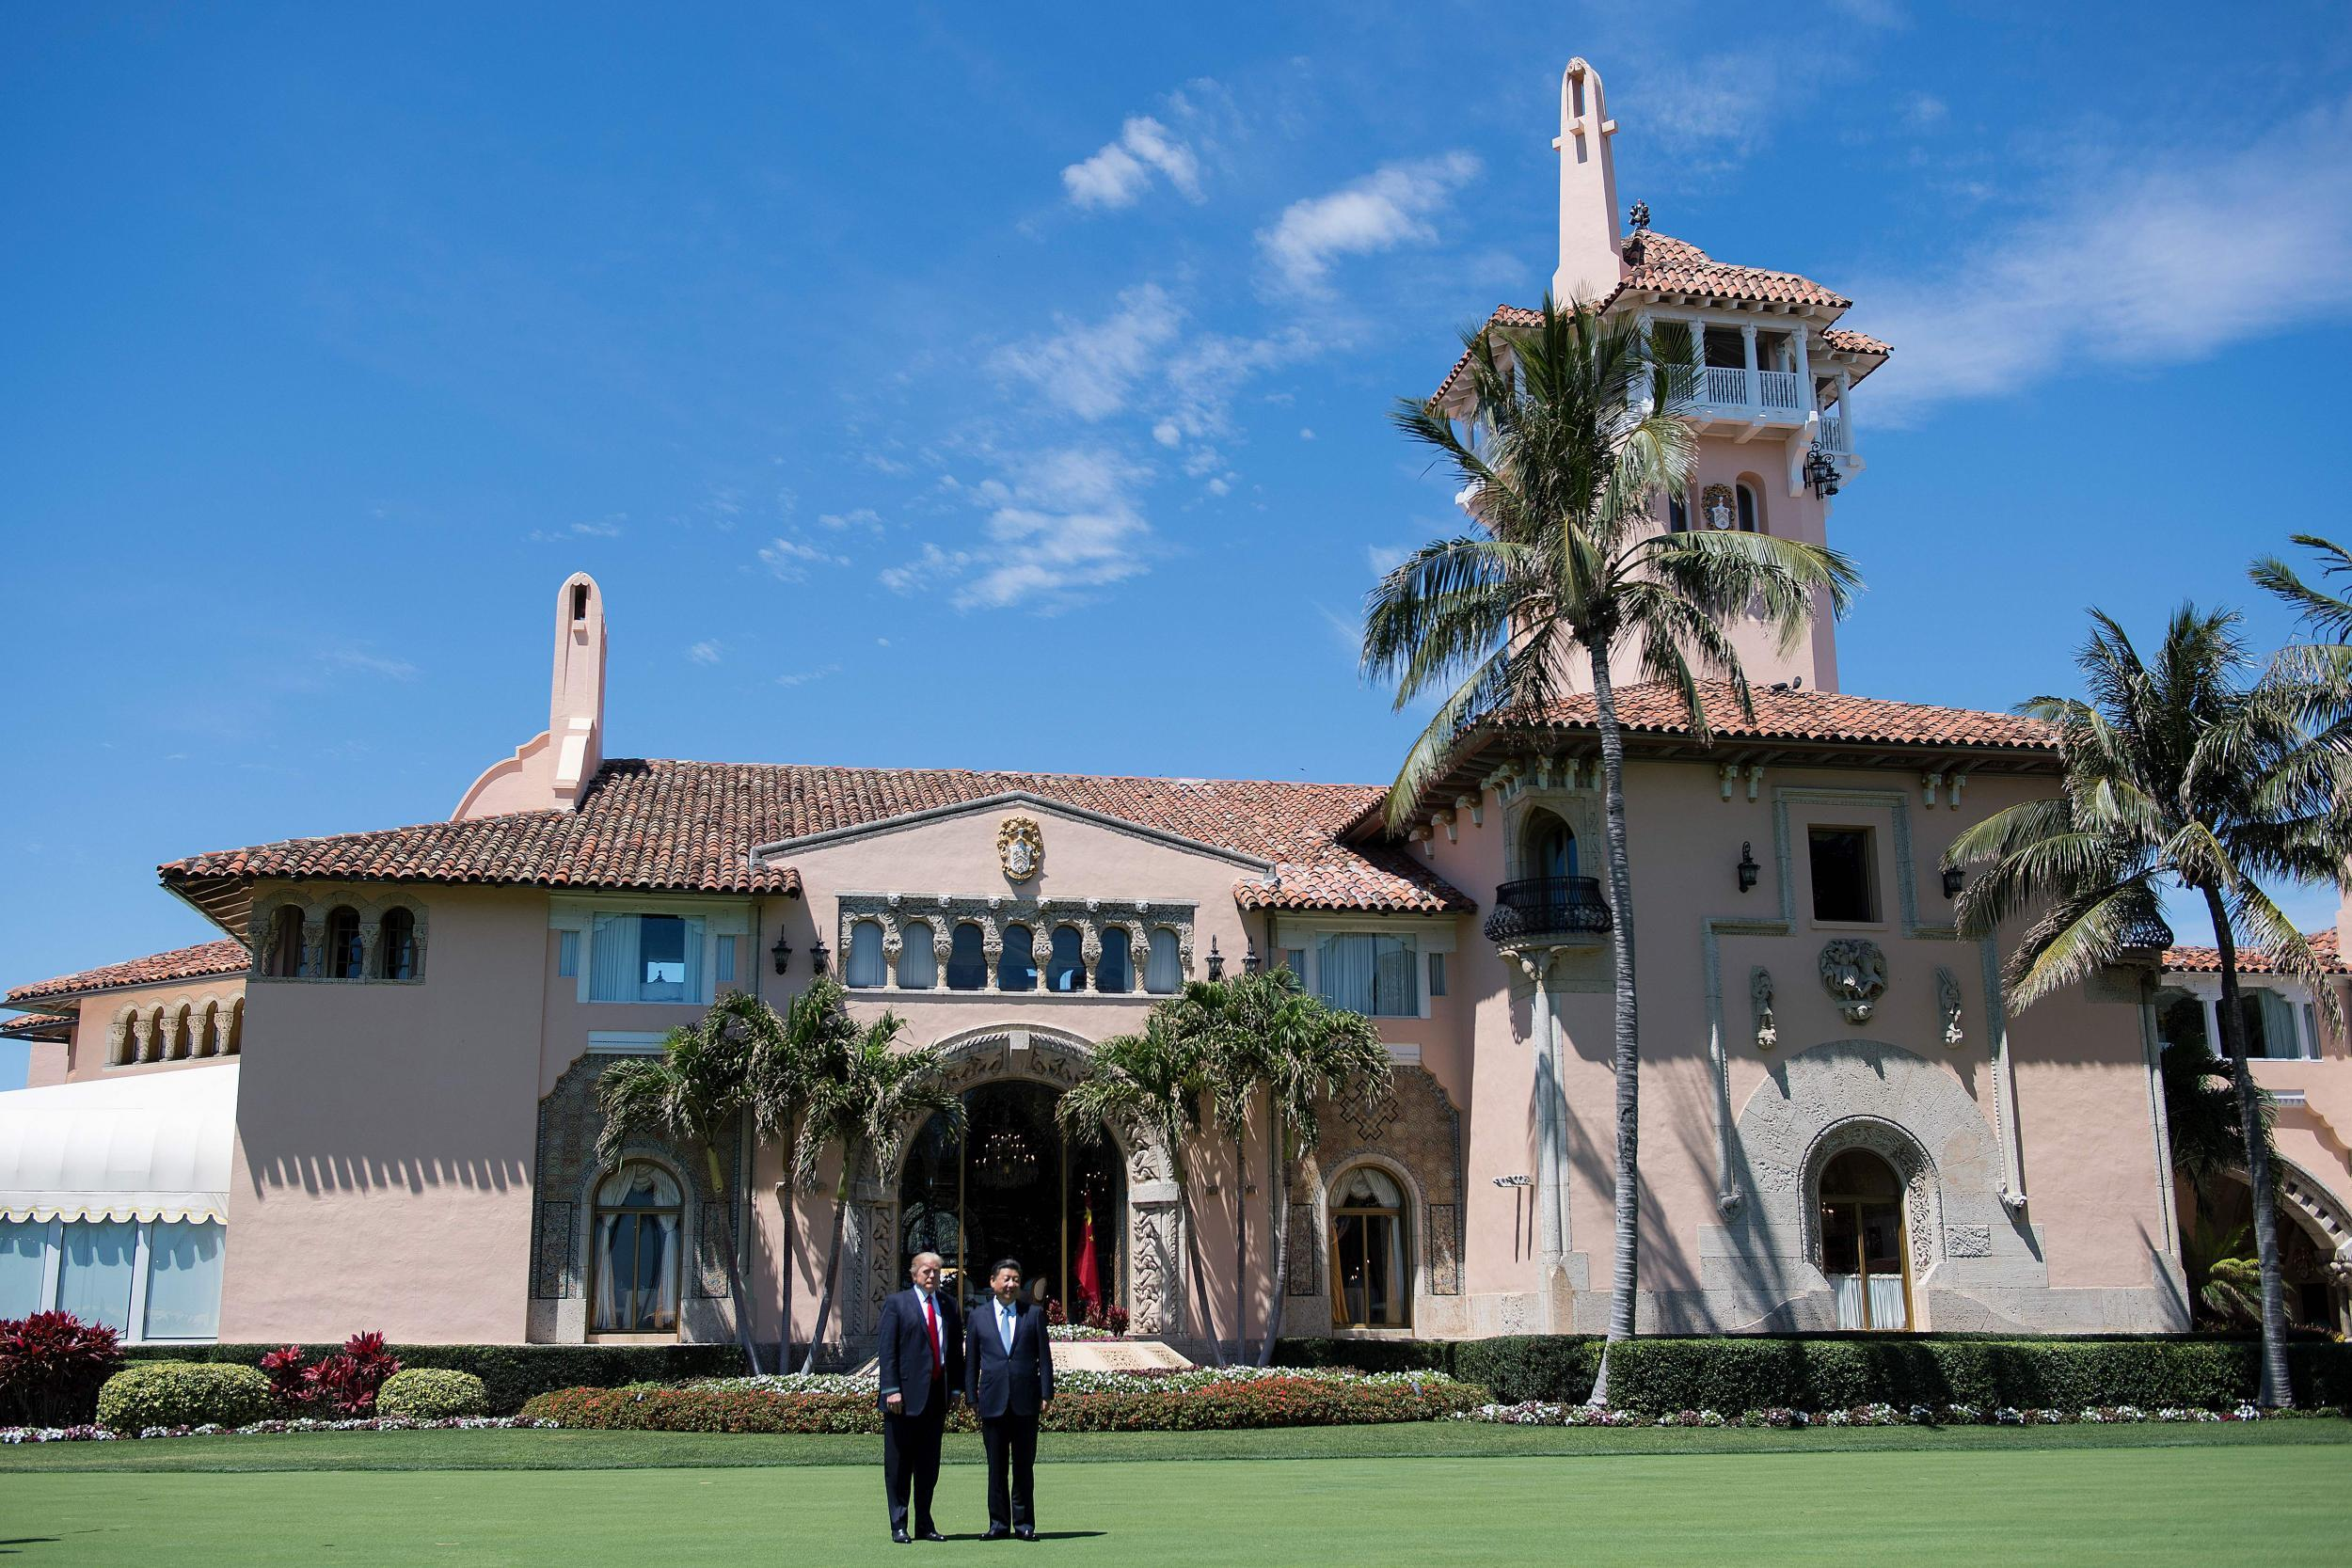 Donald Trump's Mar-a-Lago resorted promoted on State Department website in apparent ethics violation